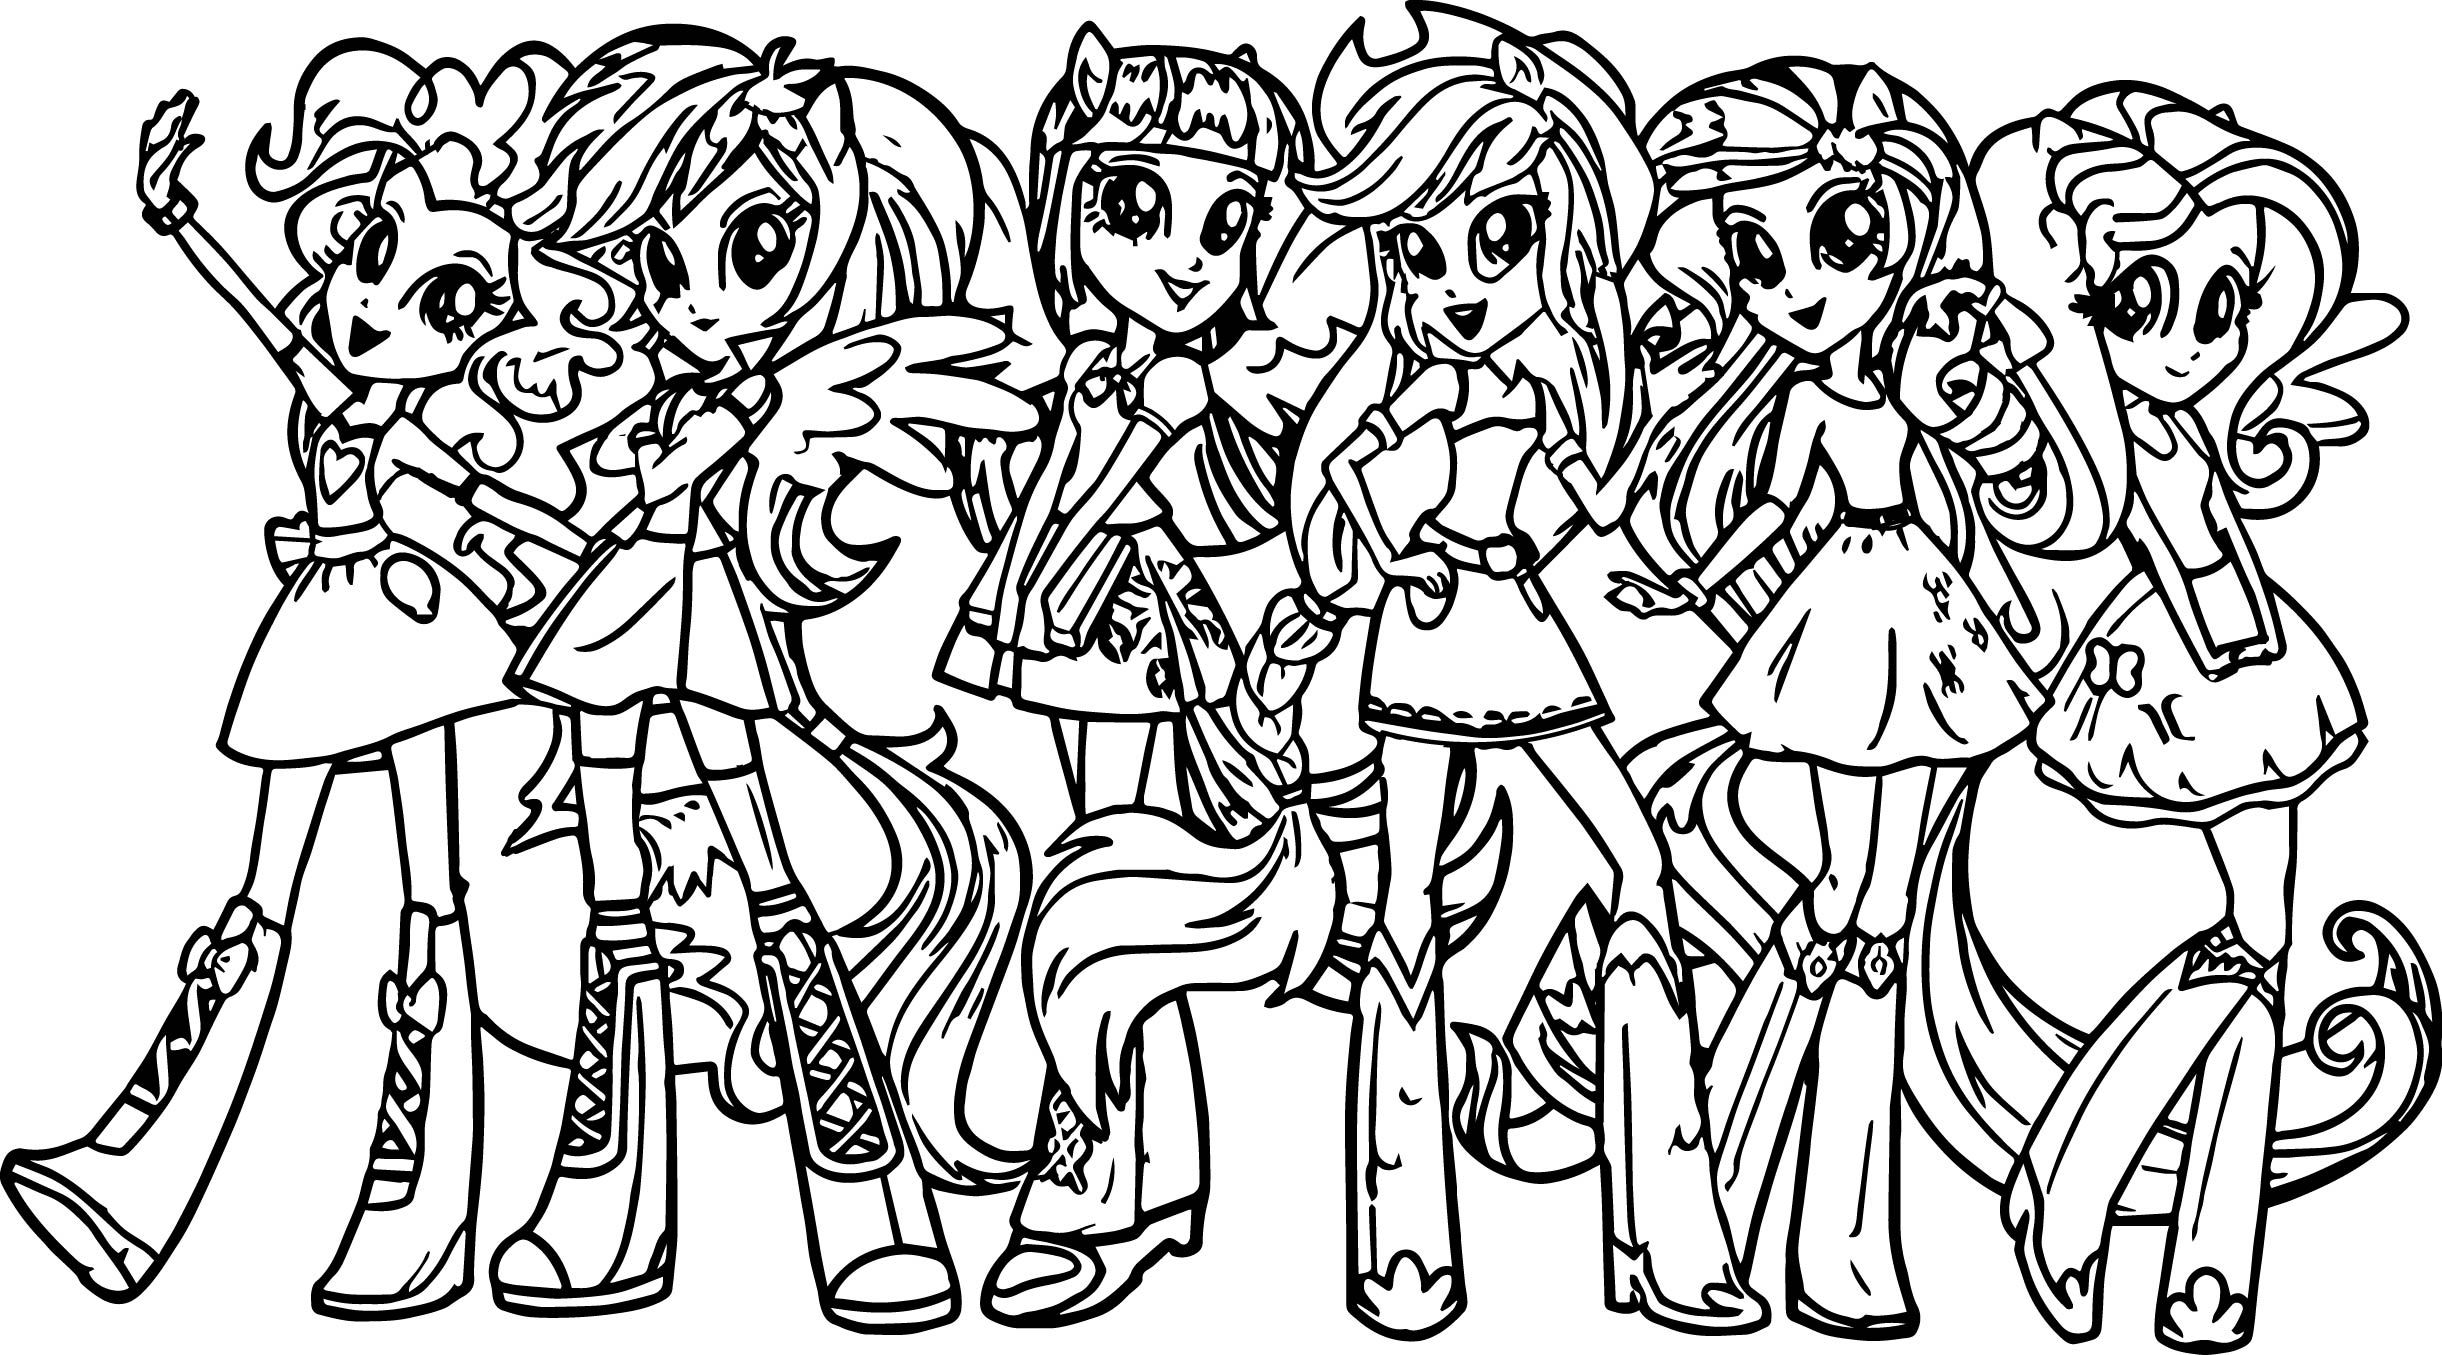 Impressive Coloring Pages My Little Pony Friendship Is Magic At My Little Pony Coloring People Coloring Pages My Little Pony Drawing